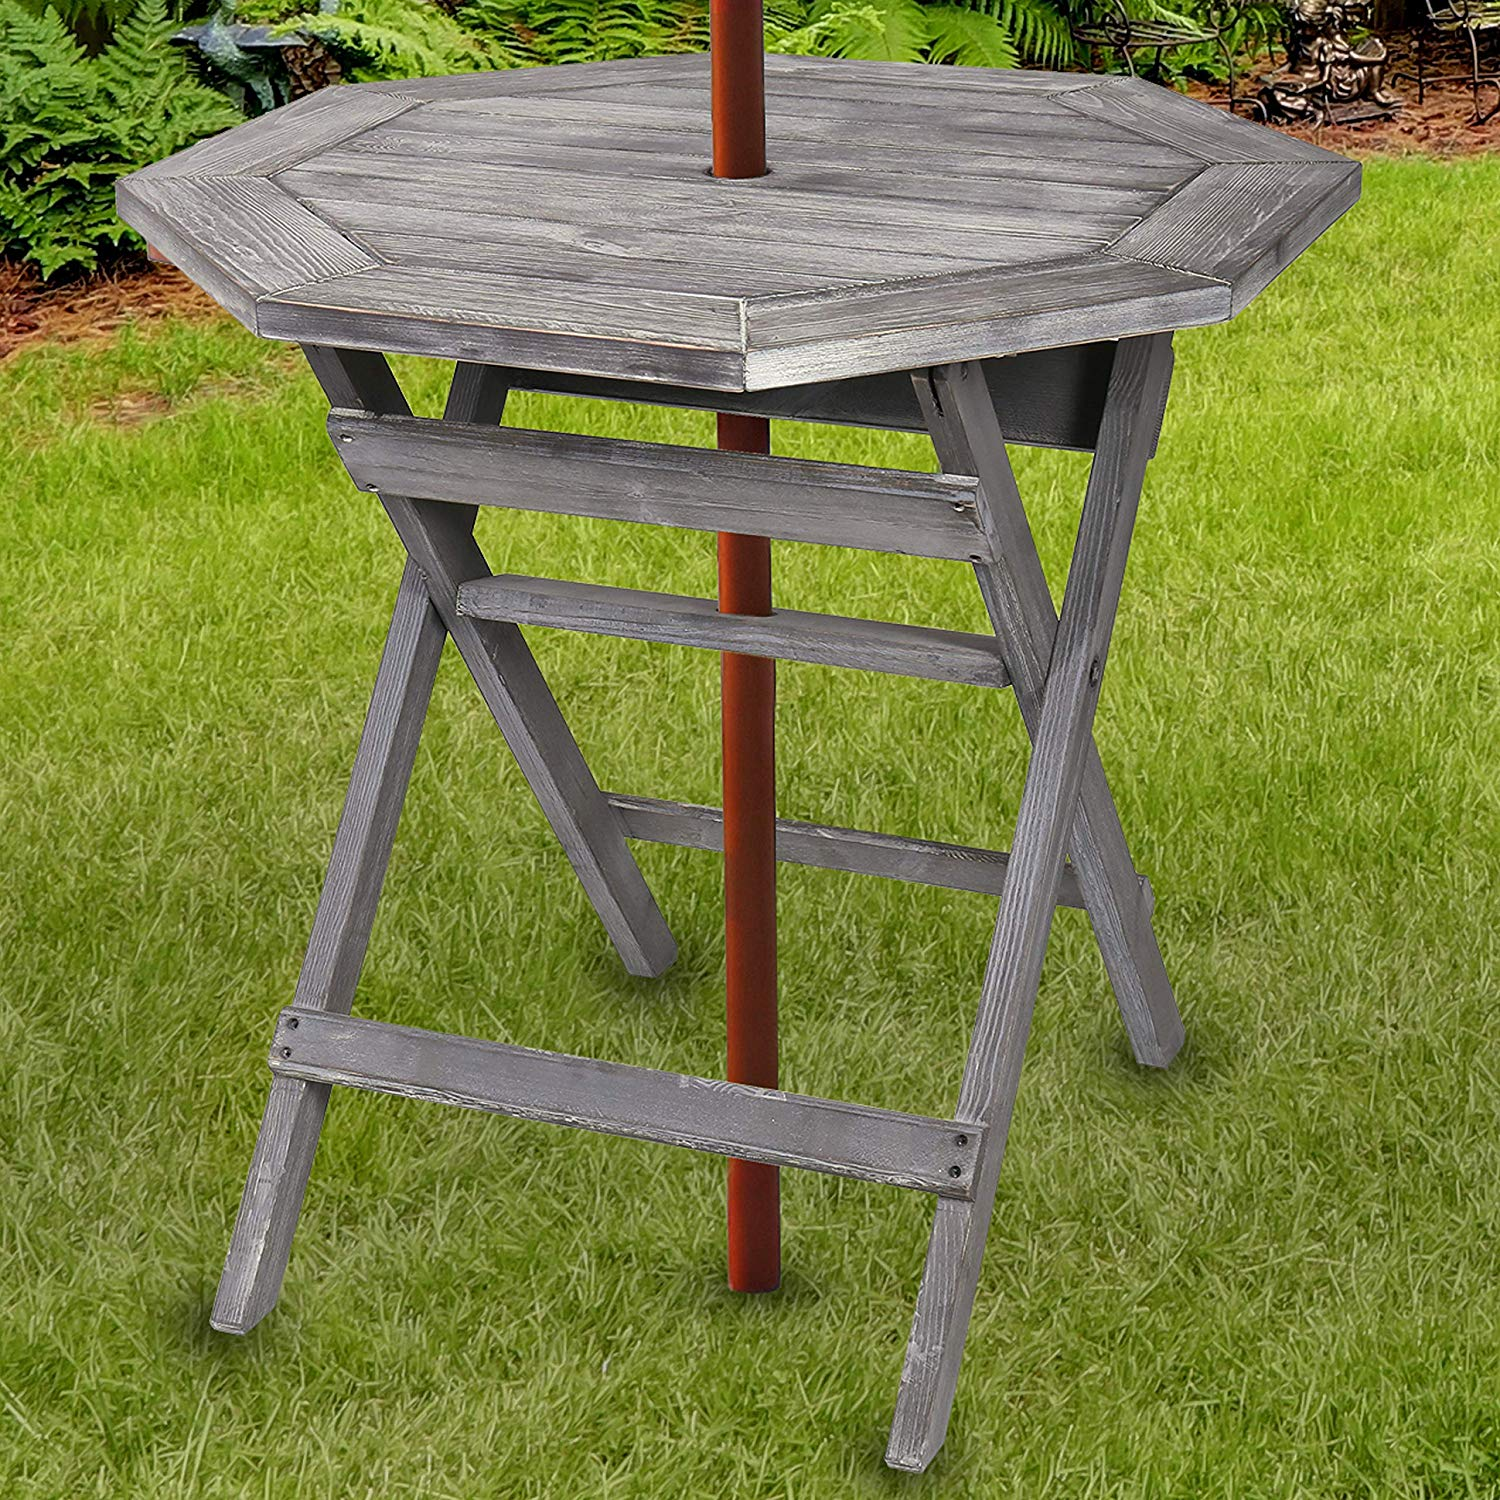 rustic barnwood gray pine wood folding octagonal inch accent table patio bistro with umbrella hole garden outdoor mirrored cocktail room essentials curtains office clear bedside